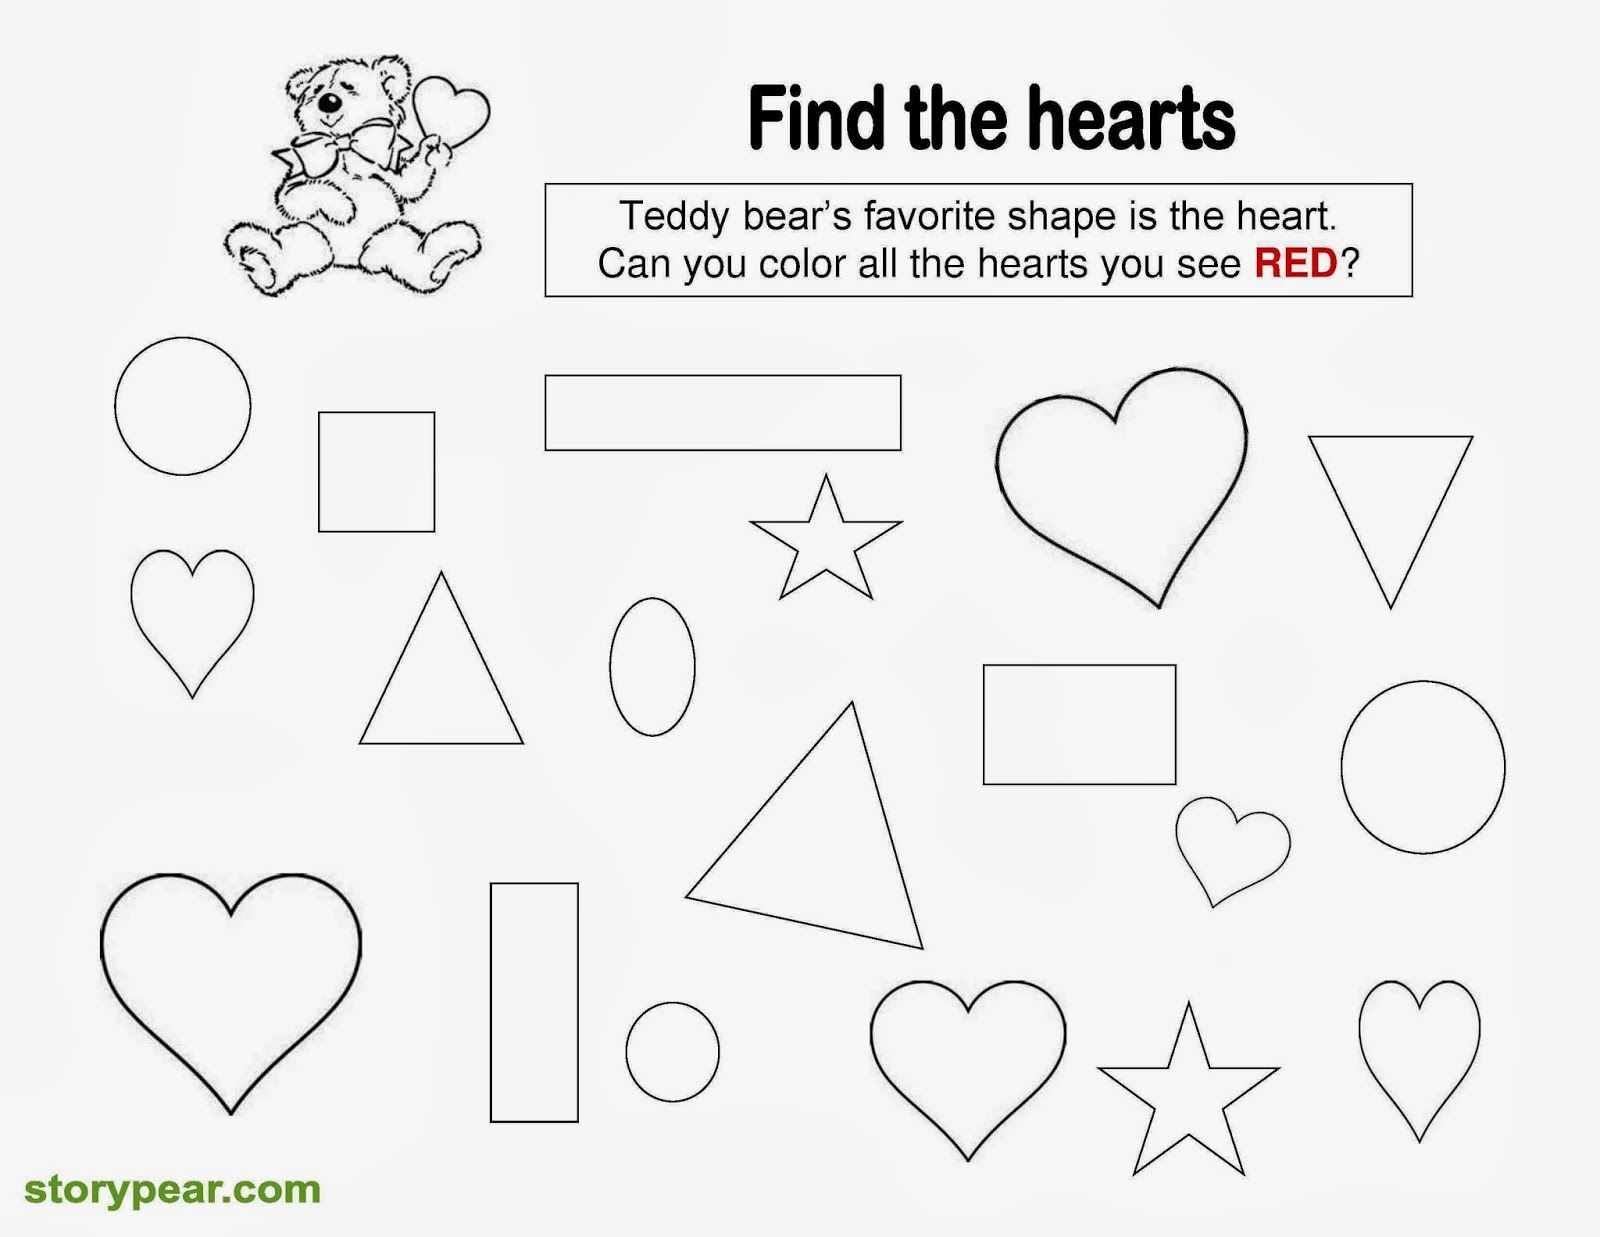 Story Pear Free Valentine Day S Printable Sheets For